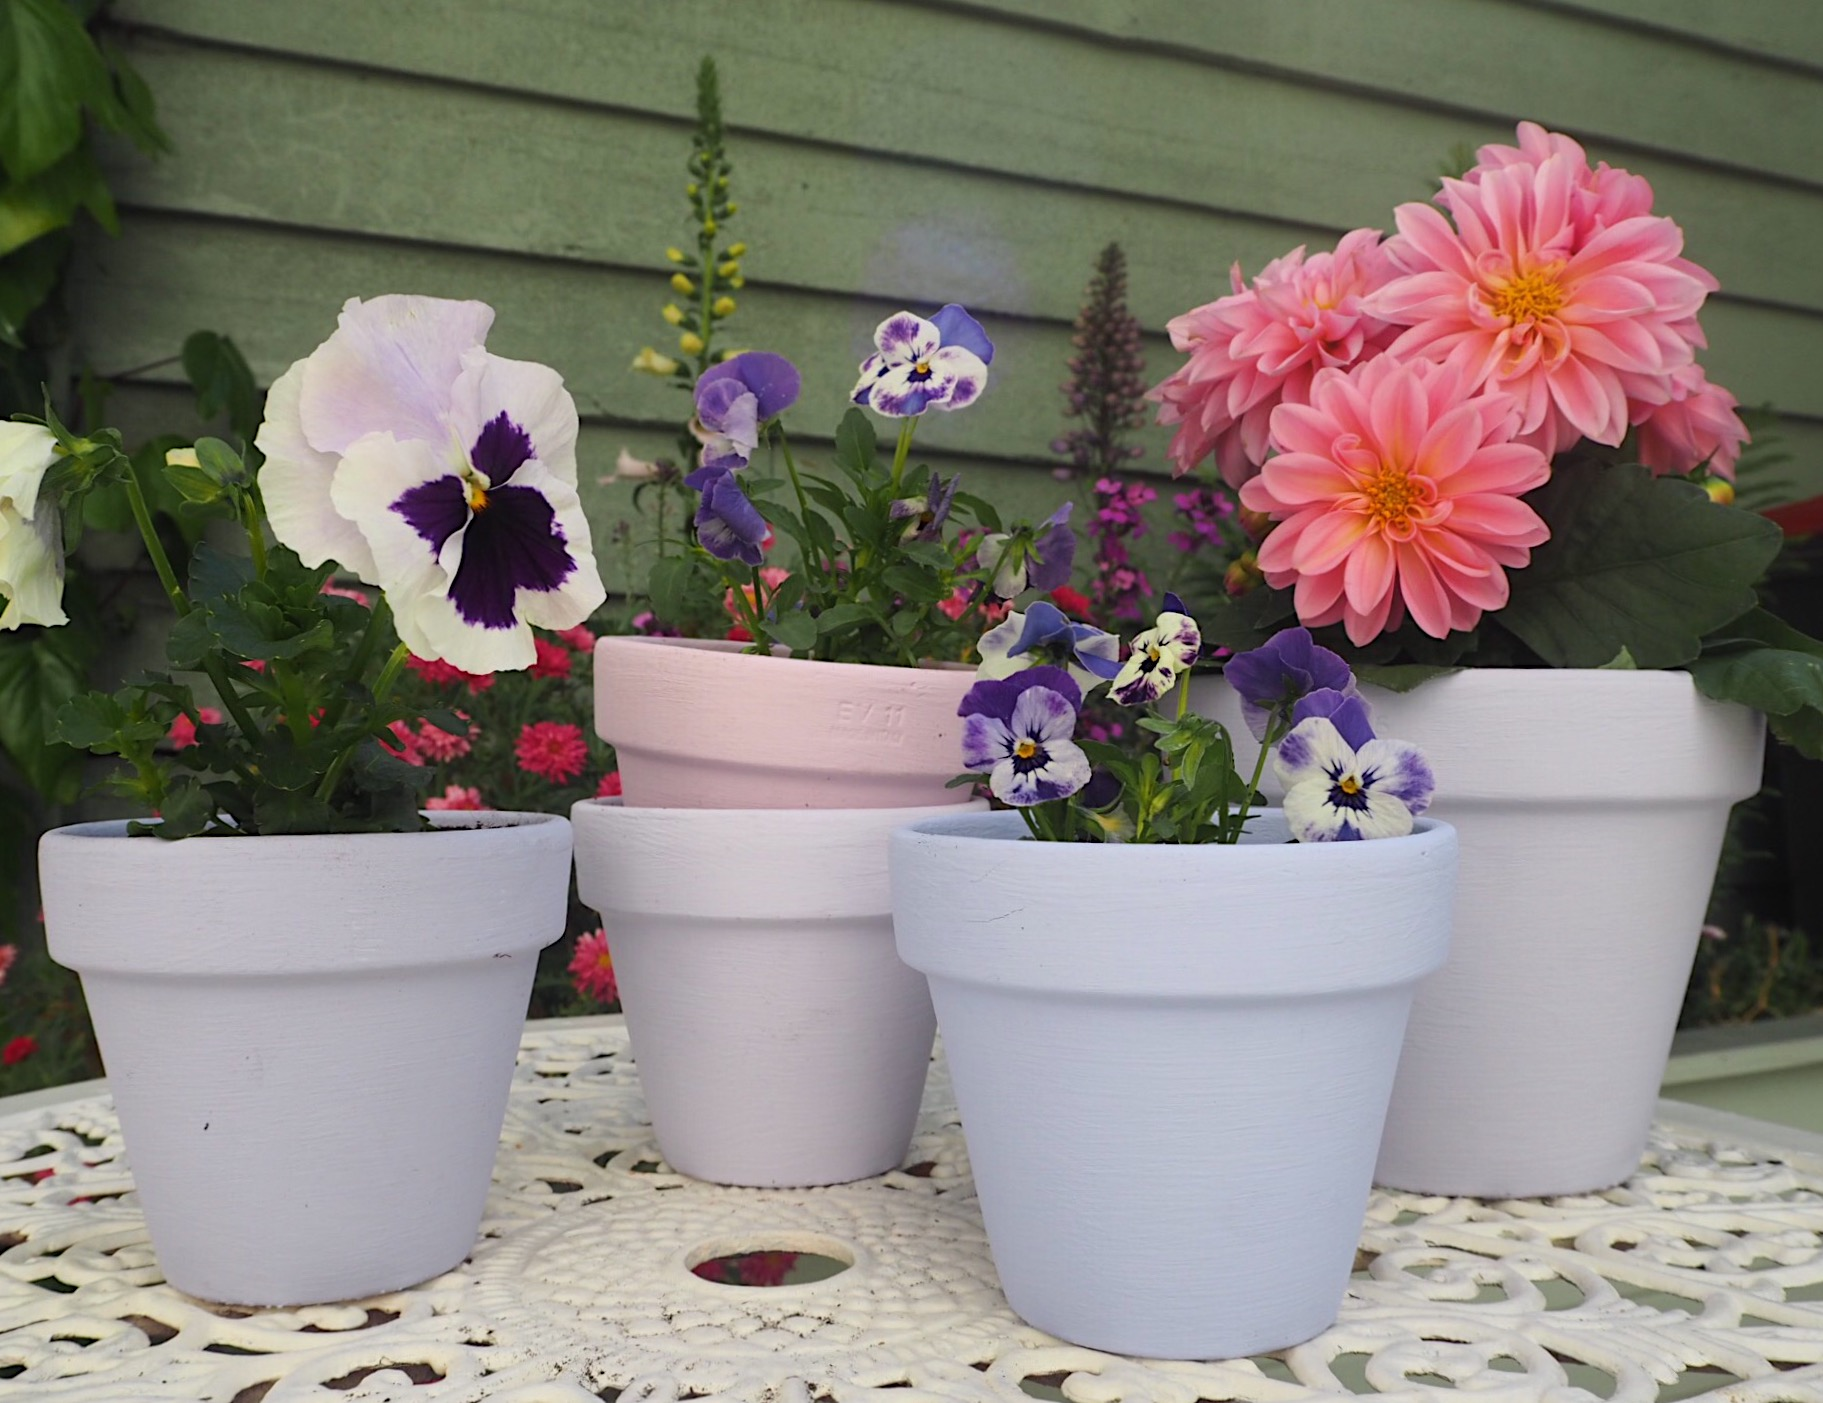 From left to right, Allium, Lilac Bud, Faded Blossom, French Lavender & First Wisteria, all  Designers Guild paint.